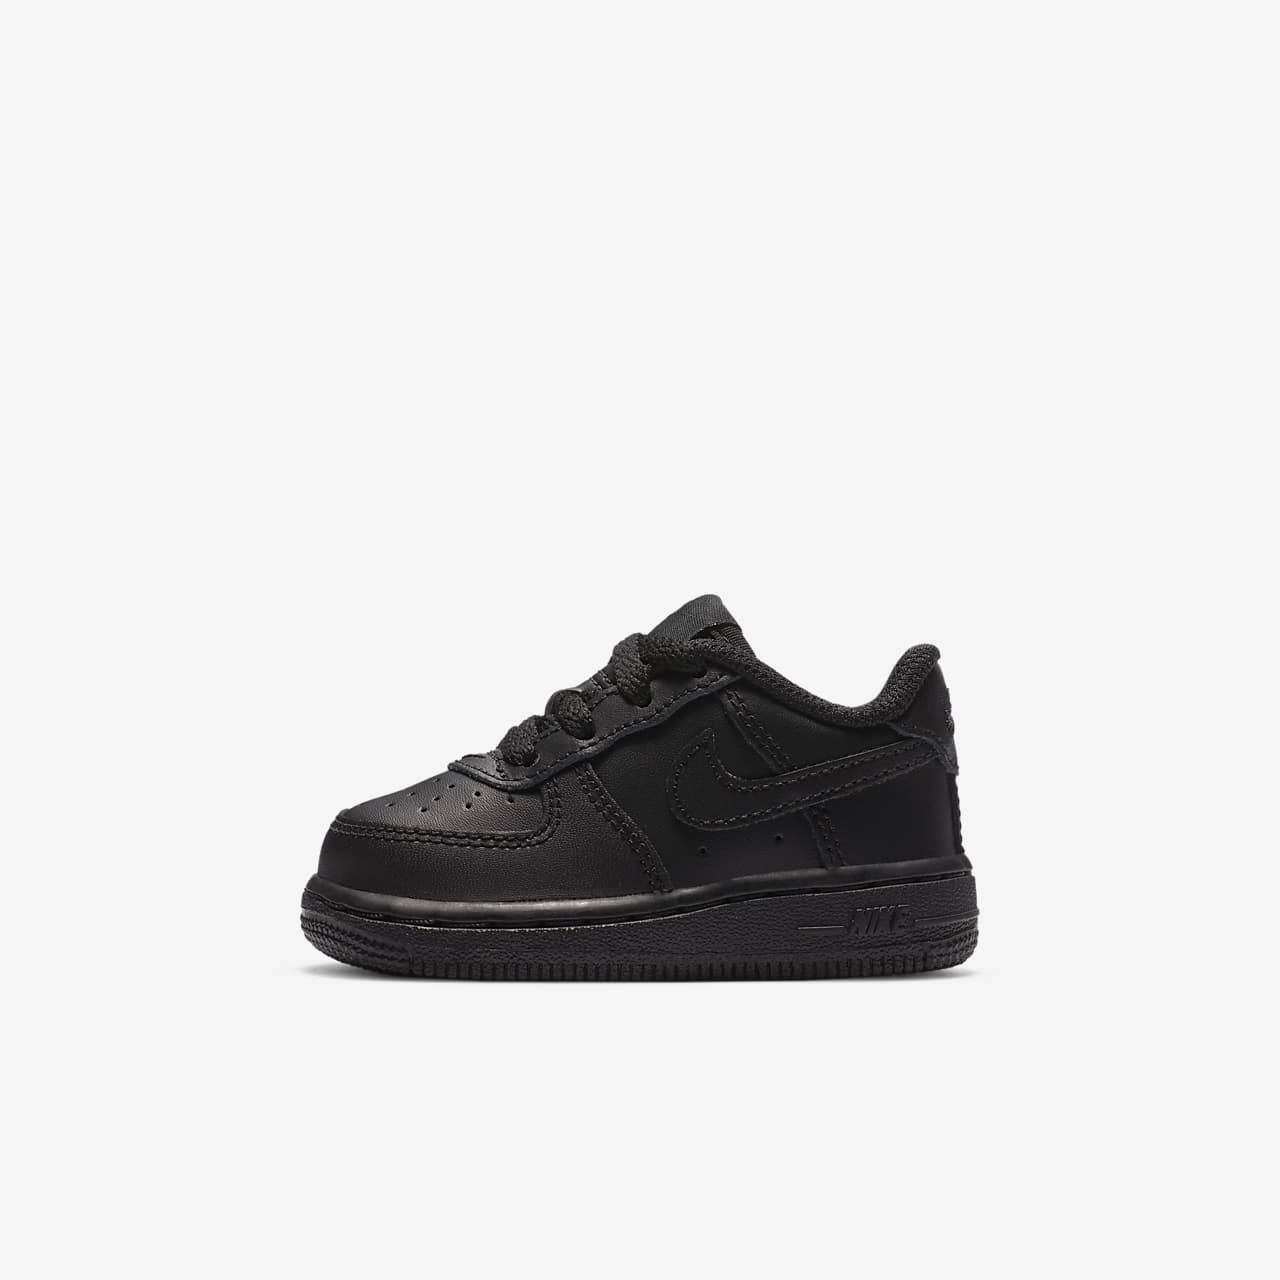 Nike Air Force 1 Girls Training Shoes Black/White gL1058X